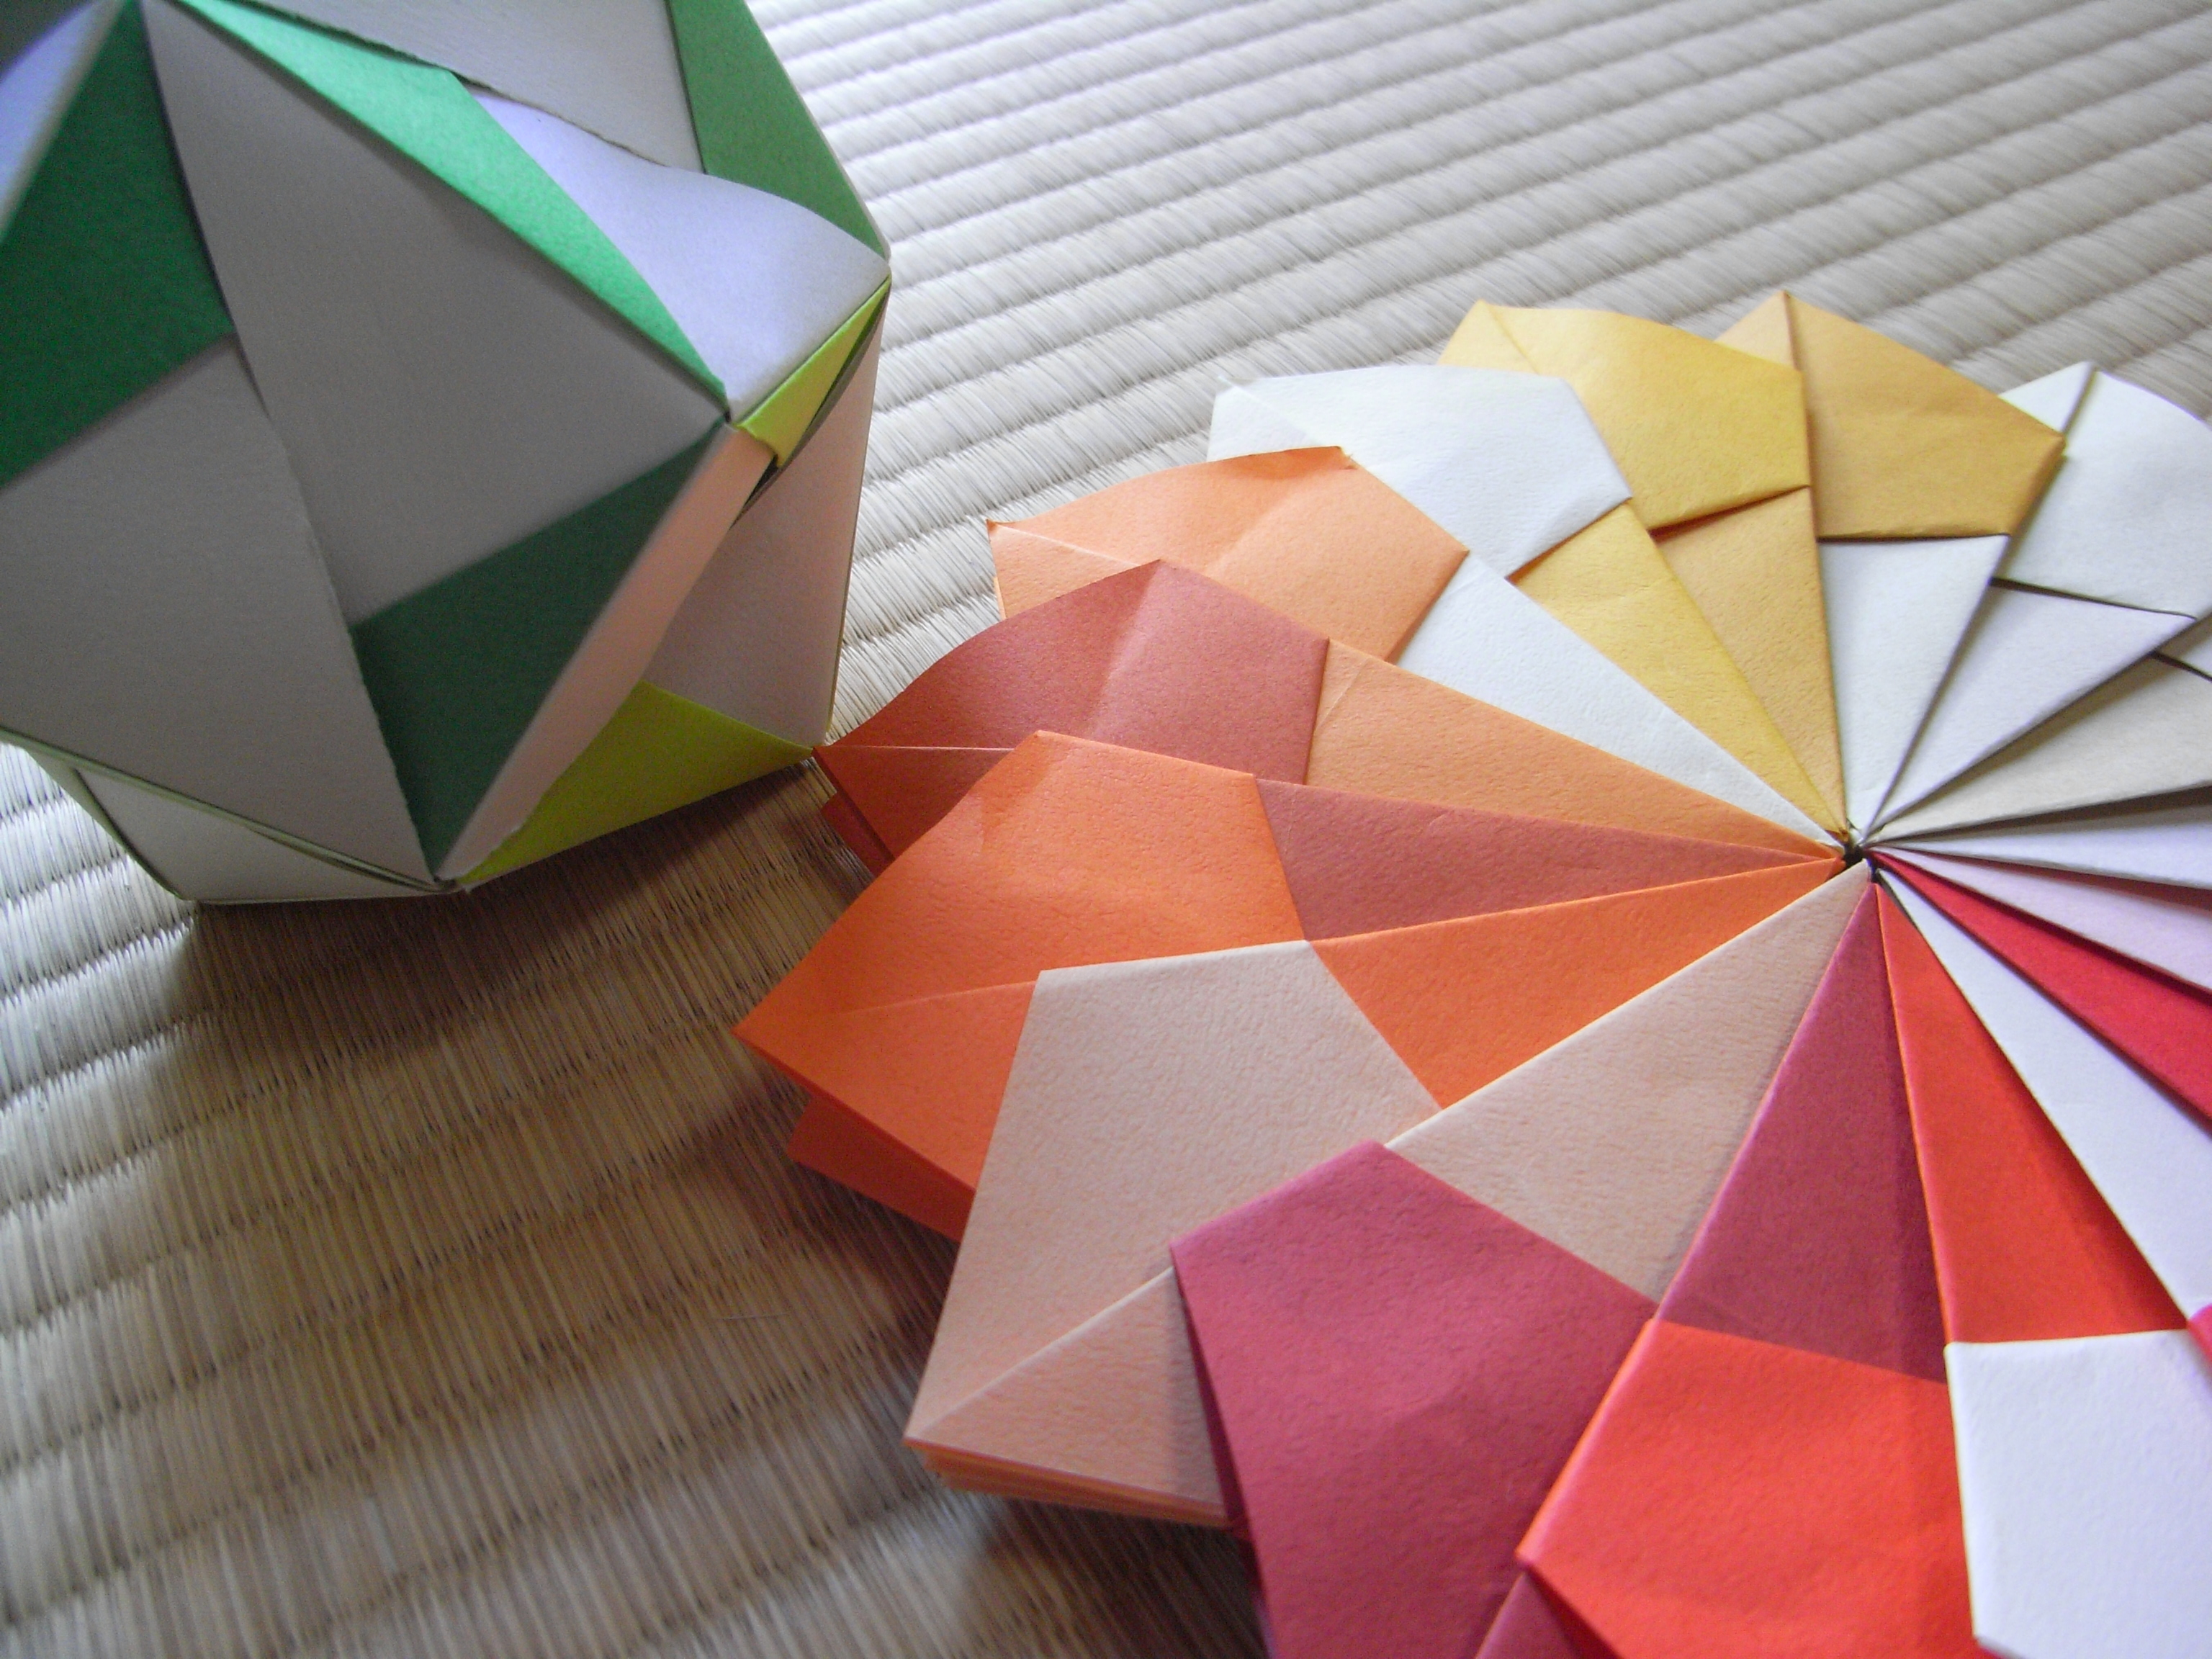 File:Image-2D and 3D modulor Origami.jpg - Wikimedia Commons - photo#28